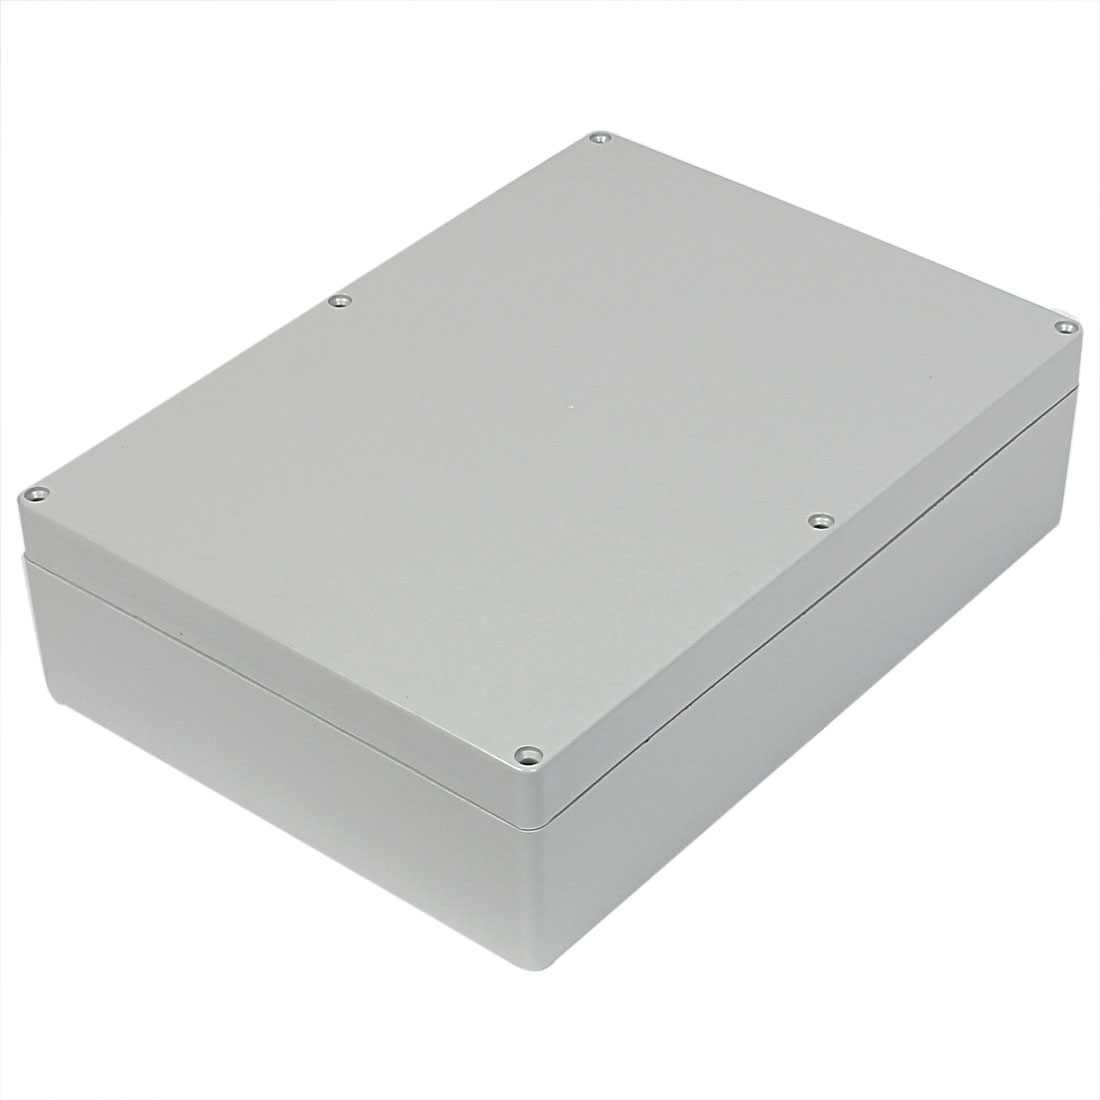 290mm x 210mm x 80mm Gray Plastic Water Resistant Enclosure Power Protection Case DIY Junction Box